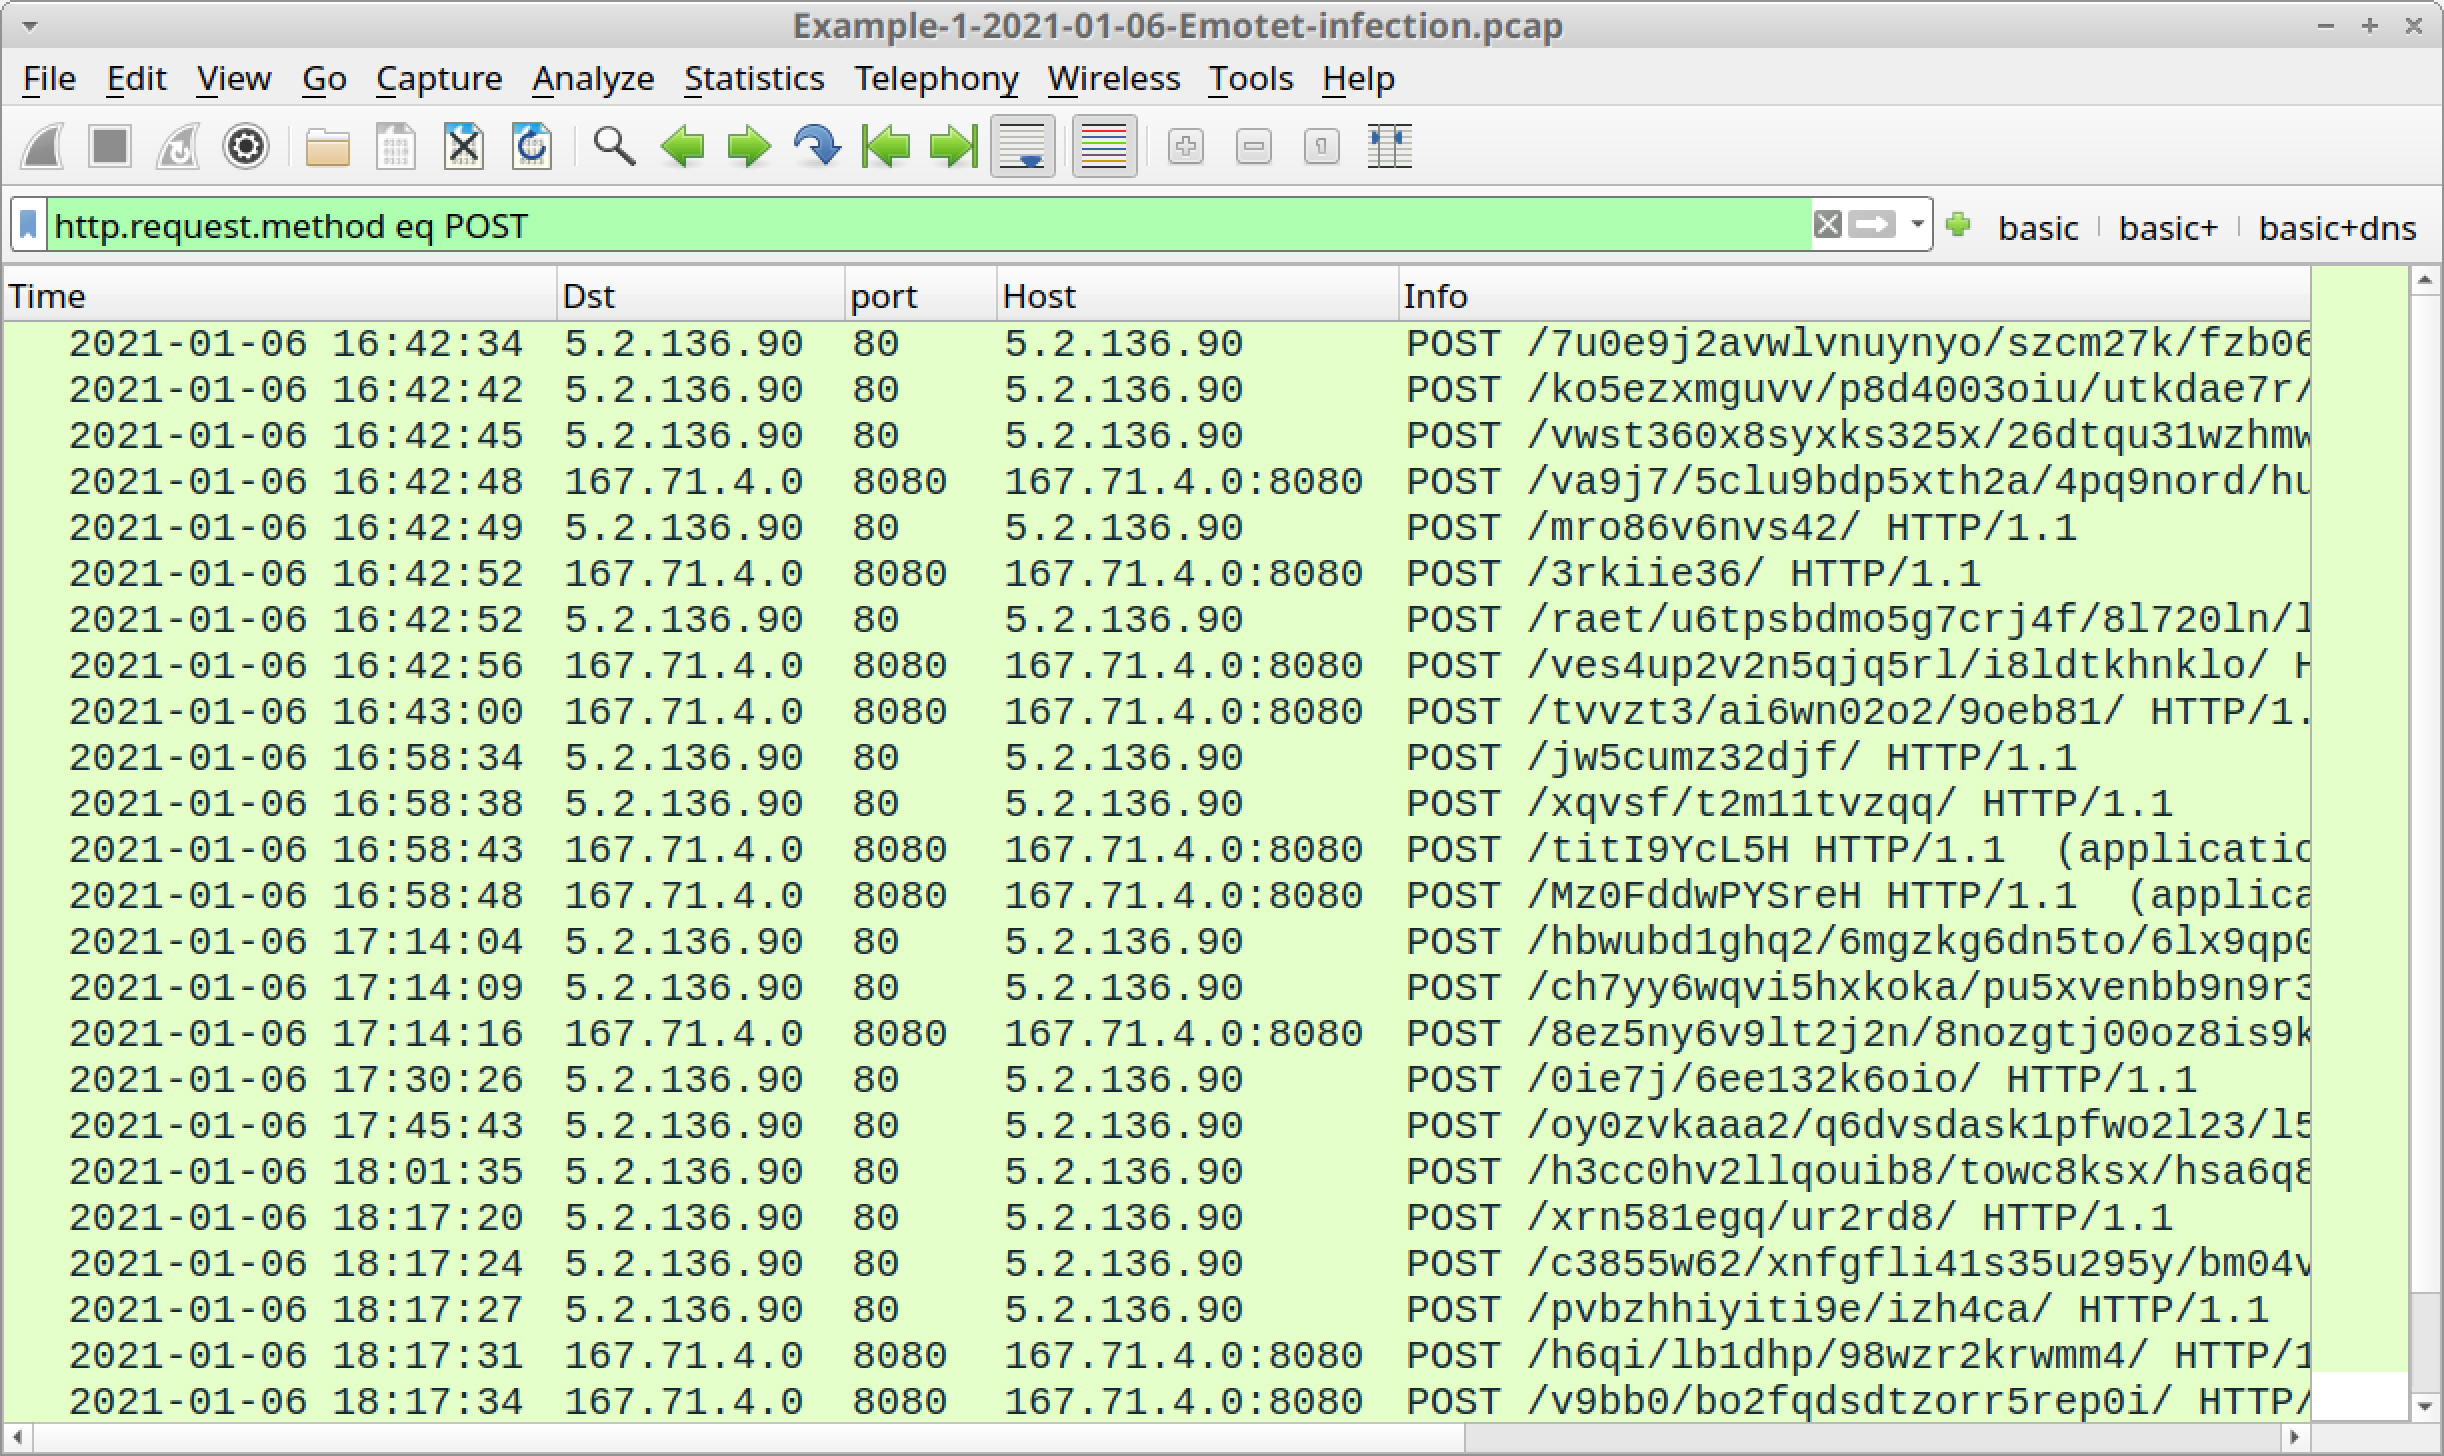 Figure 11. Filtering for HTTP POST requests in our first pcap.